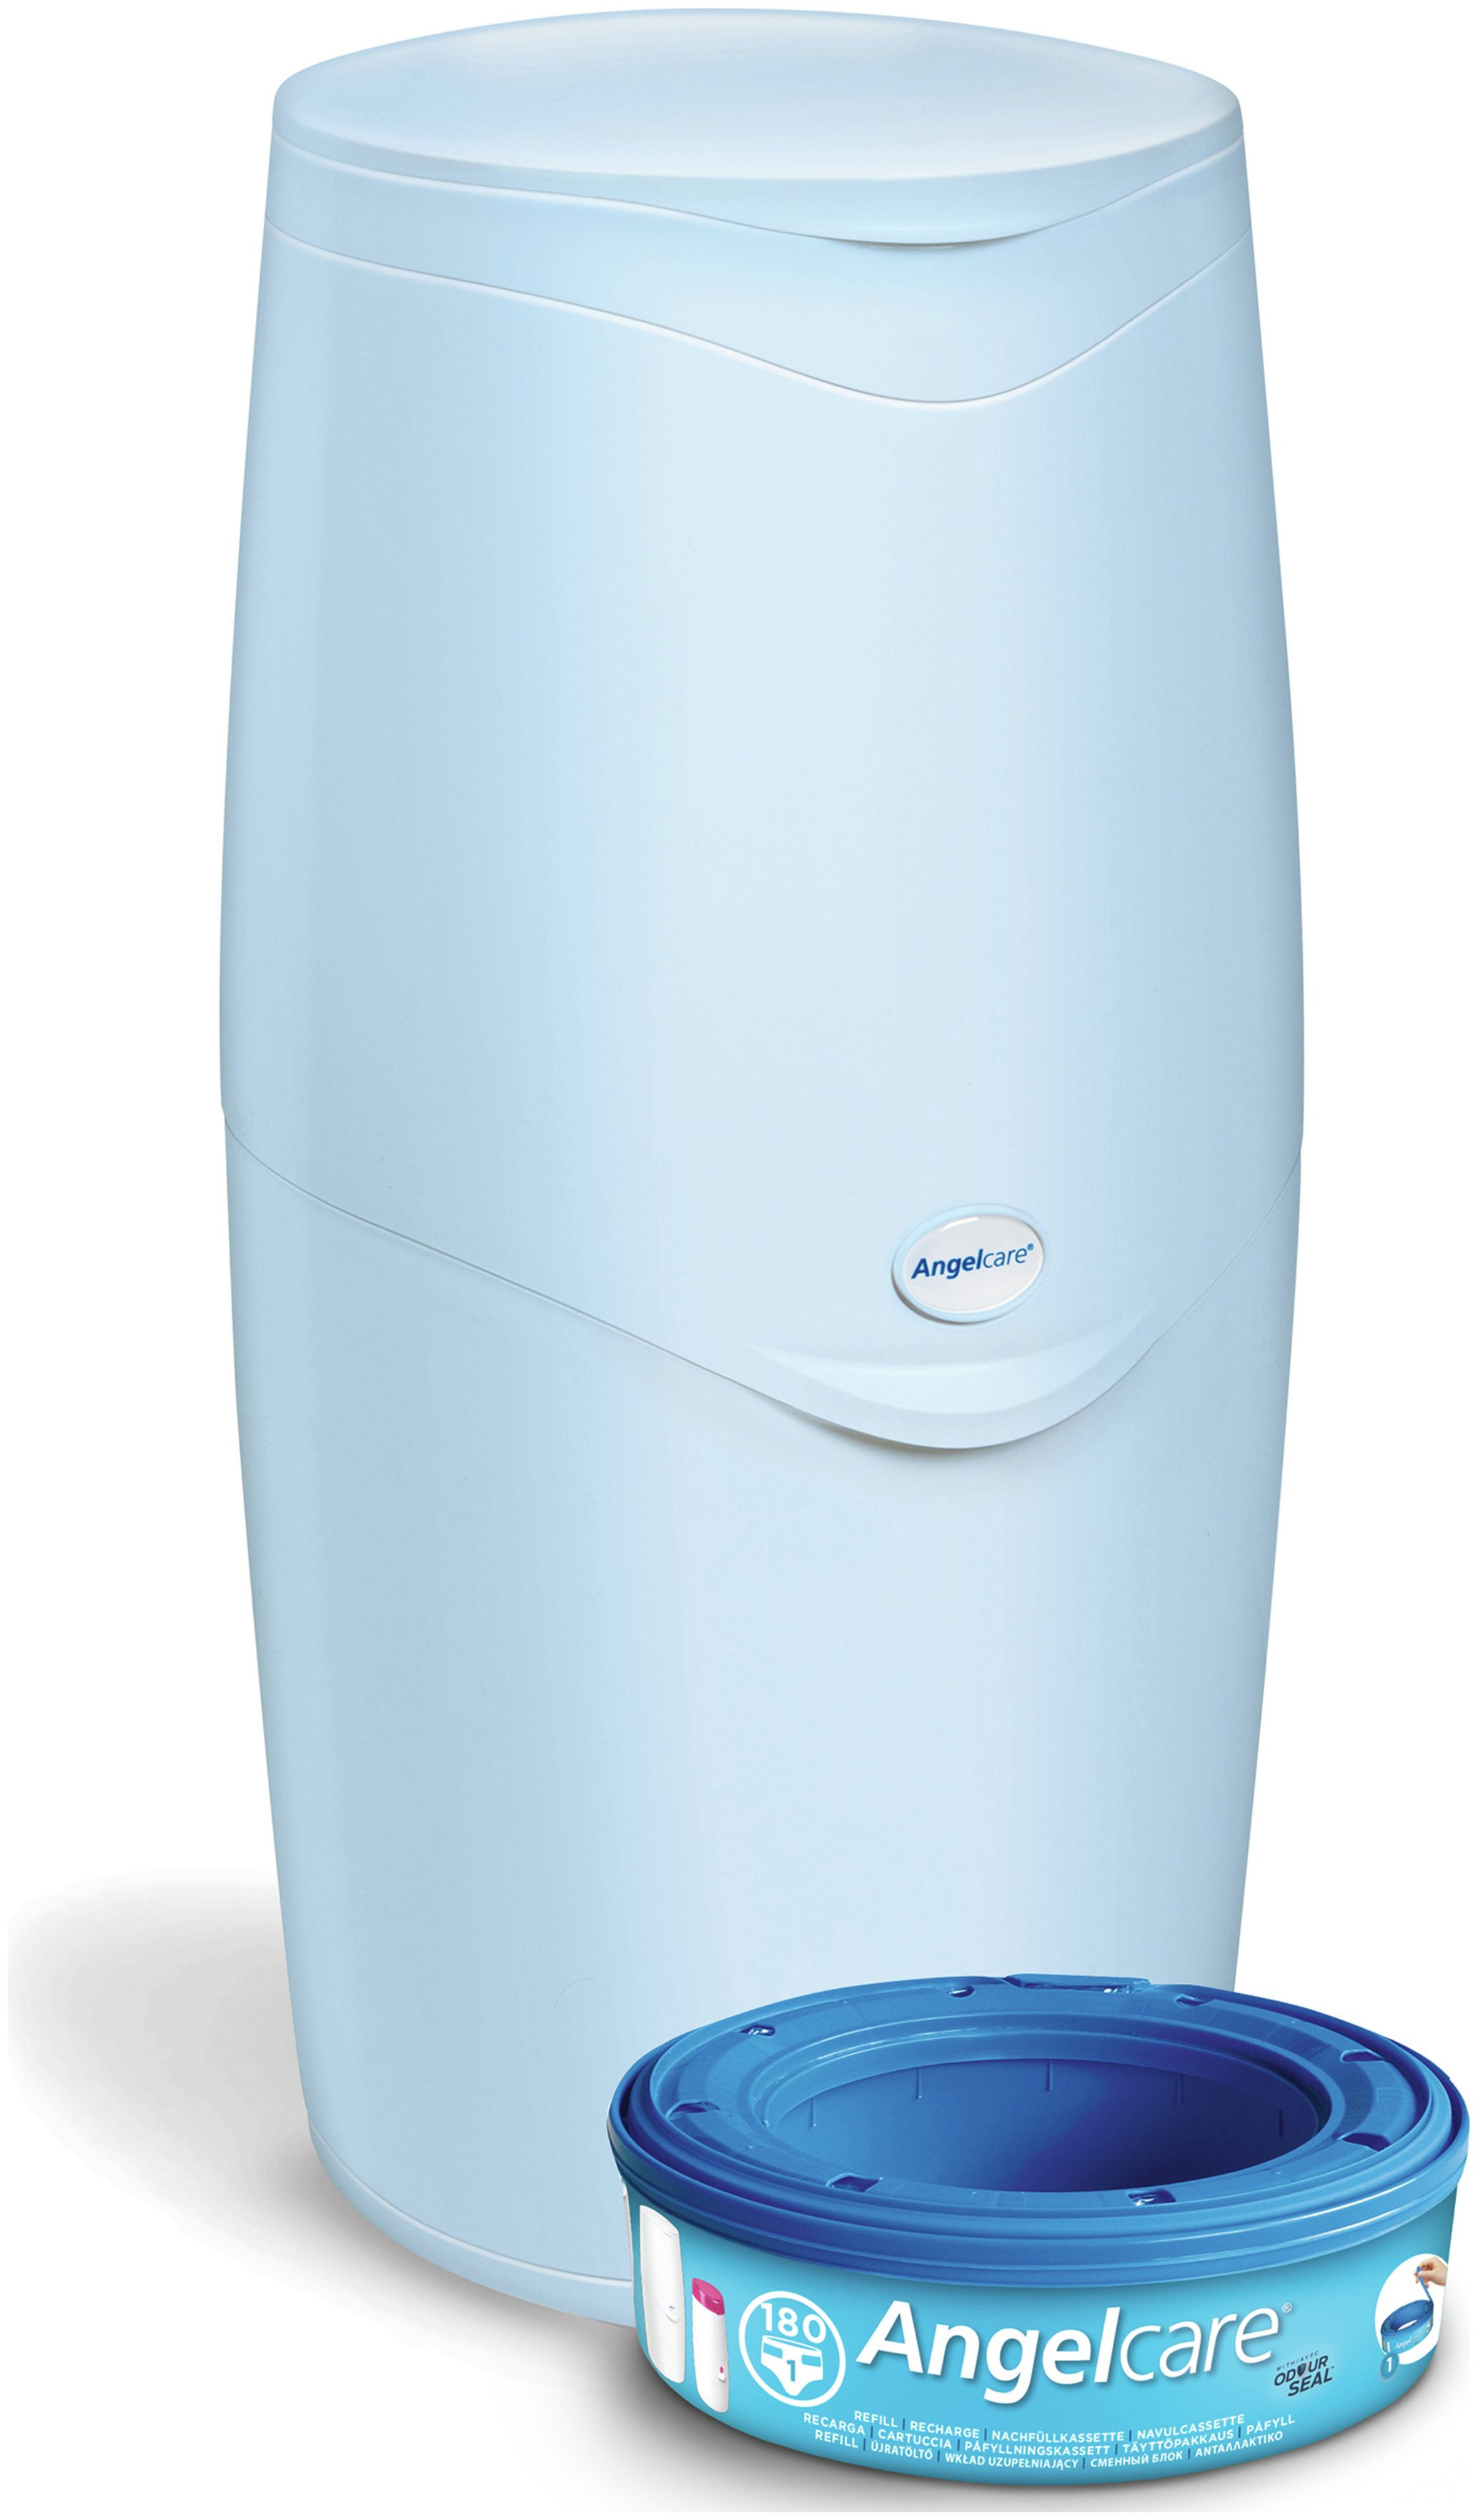 Image of Angelcare Nappy Disposal System - Blue